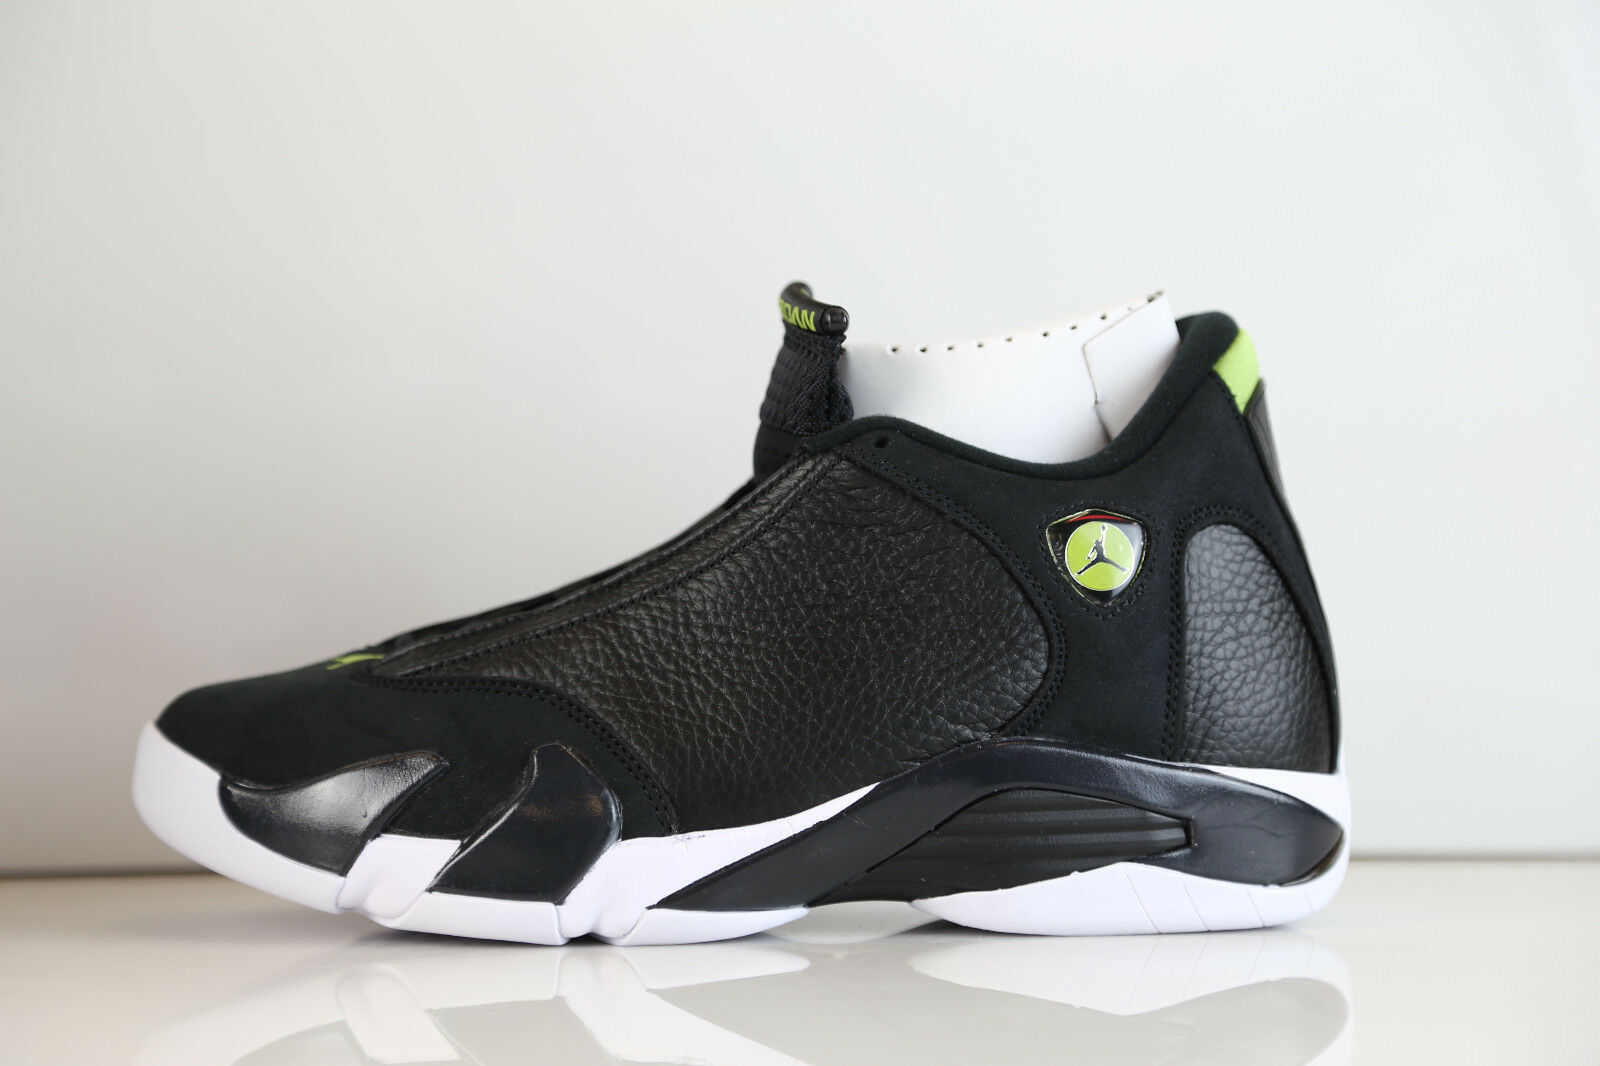 Nike Air Jordan Retro 14 Black Vivid Green Indiglo 2016  487471-005 7-15 11